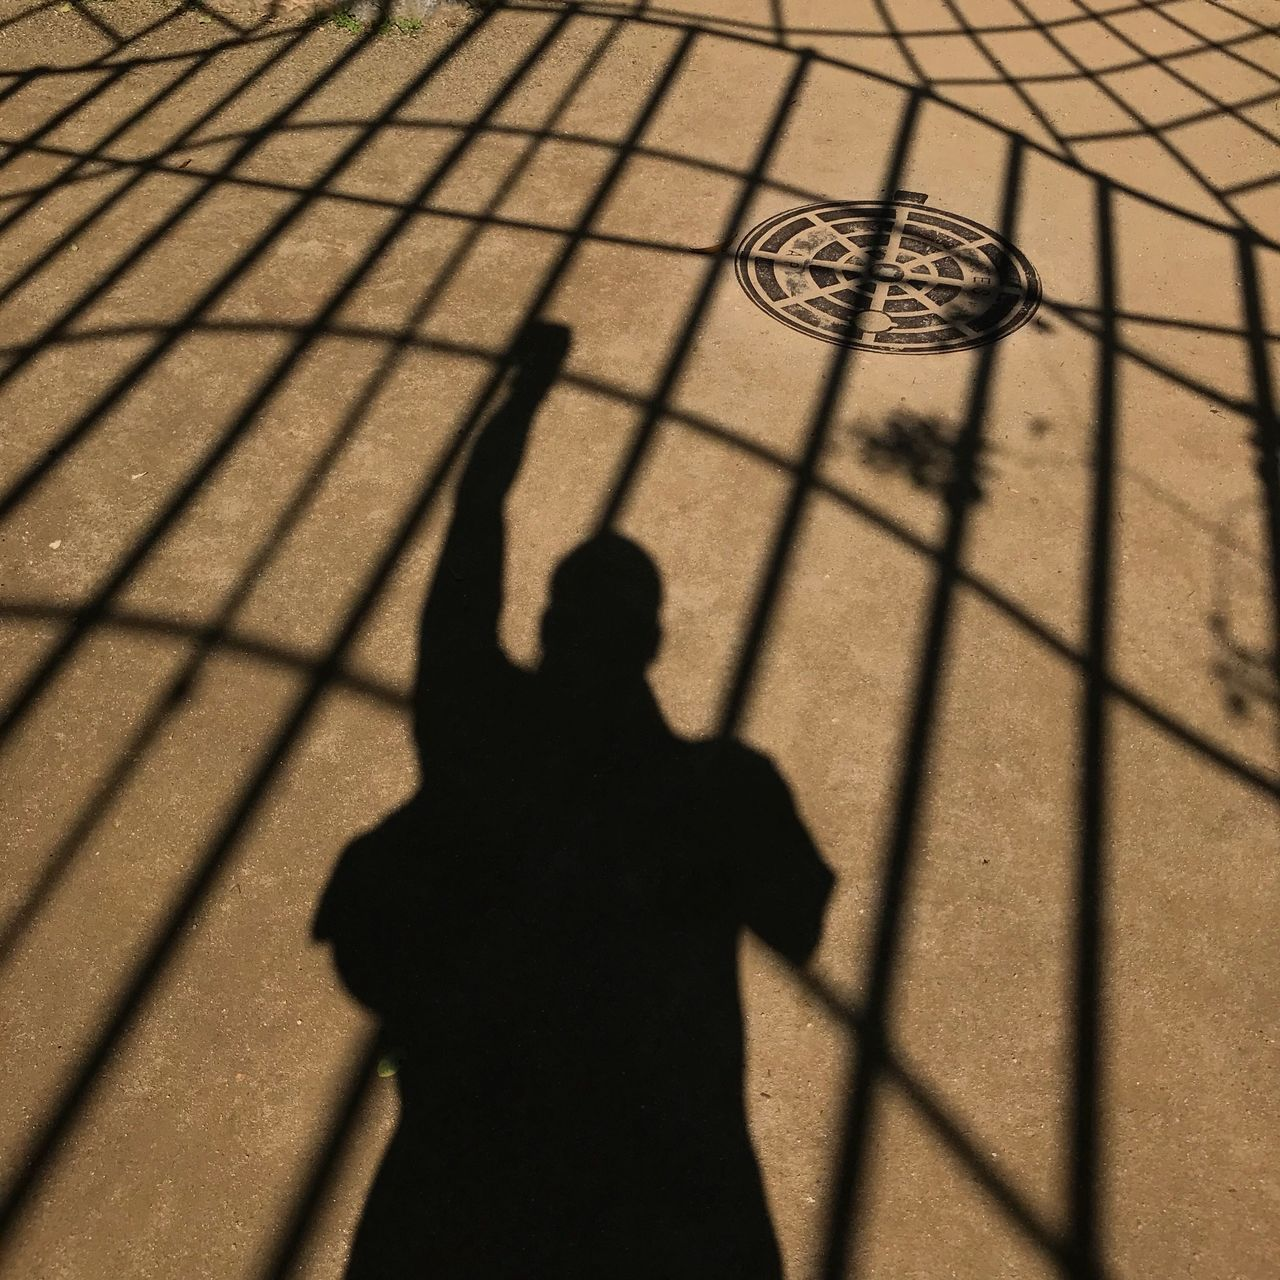 shadow, sunlight, focus on shadow, nature, high angle view, day, real people, leisure activity, lifestyles, outdoors, people, sport, standing, pattern, men, silhouette, human representation, representation